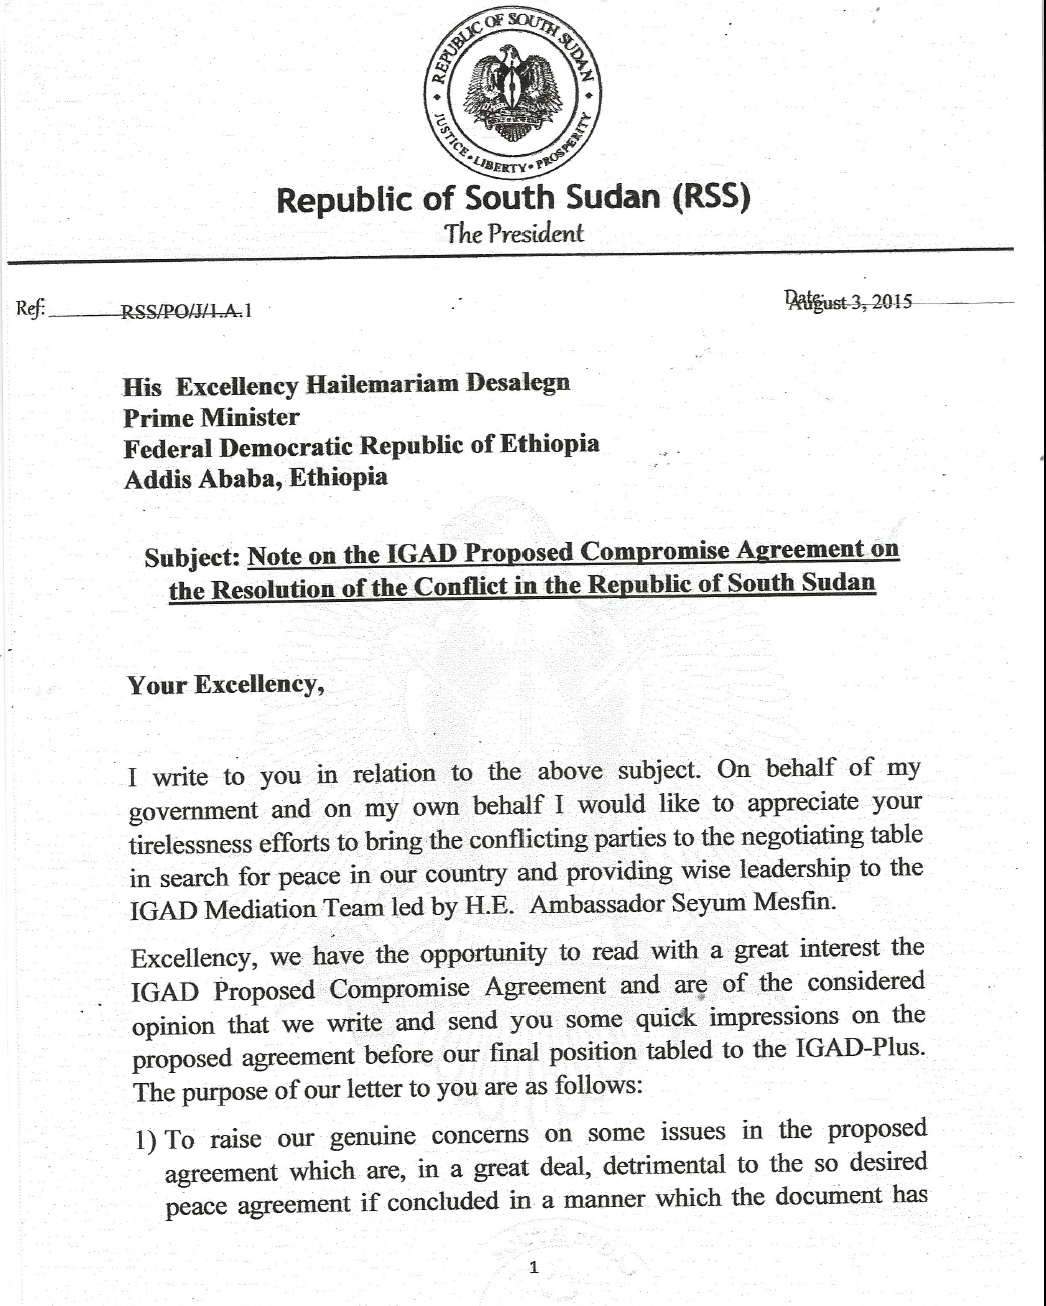 ref rss po j j a note on the igad proposed compromise ref rss po j j a note on the igad proposed compromise agreement on the resolution of the conflict in the republic of south sudan letter between the